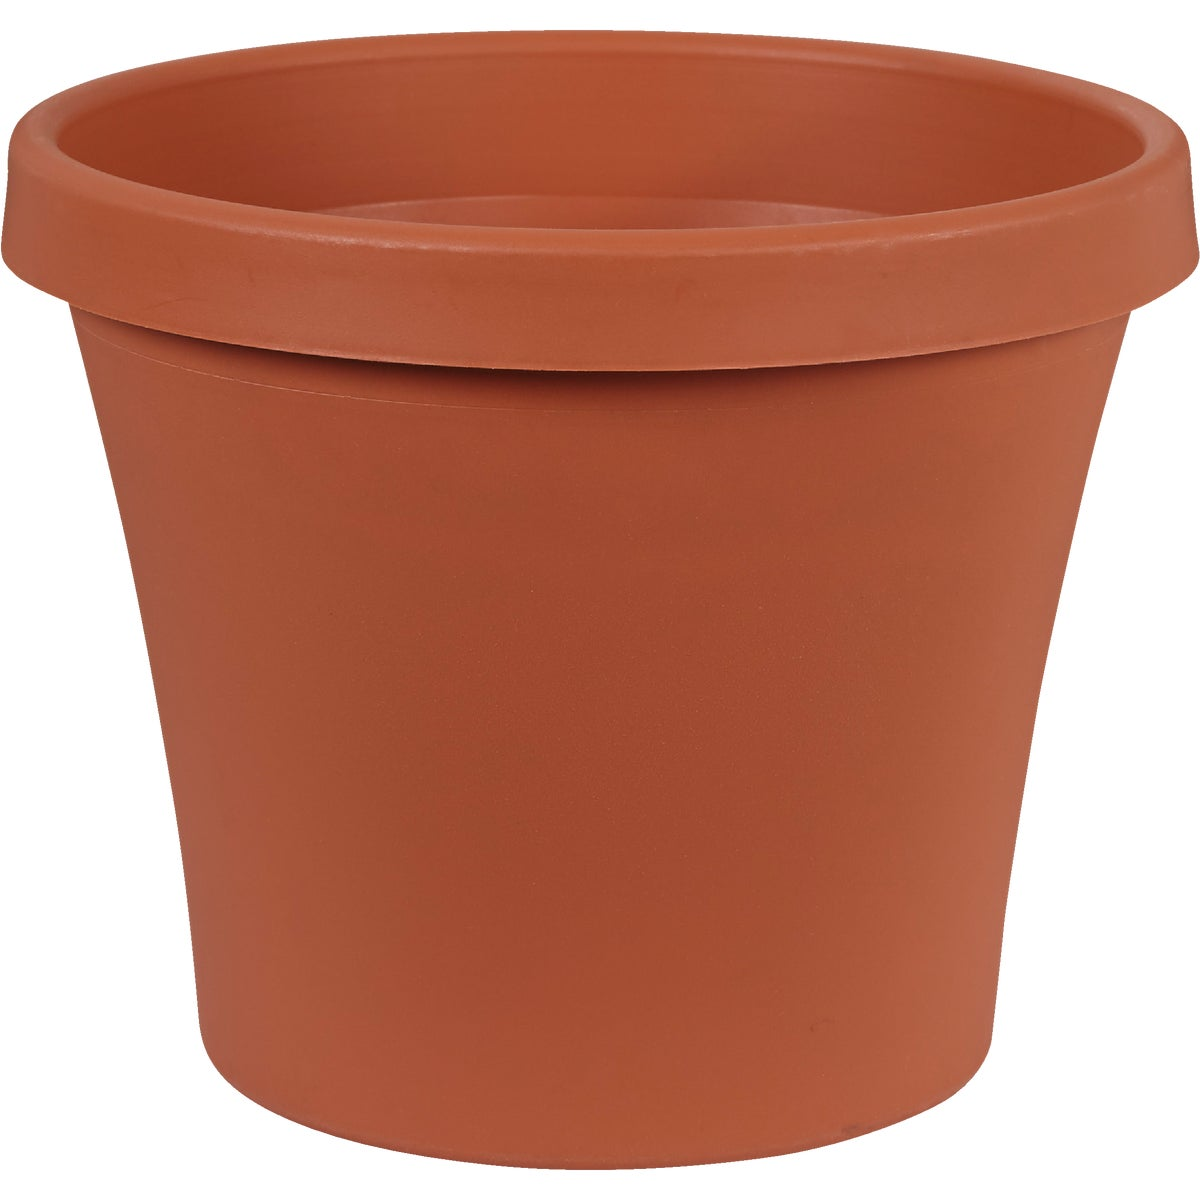 "6"" CLAY POLY POT - 50006C by Fiskars Brands Inc"